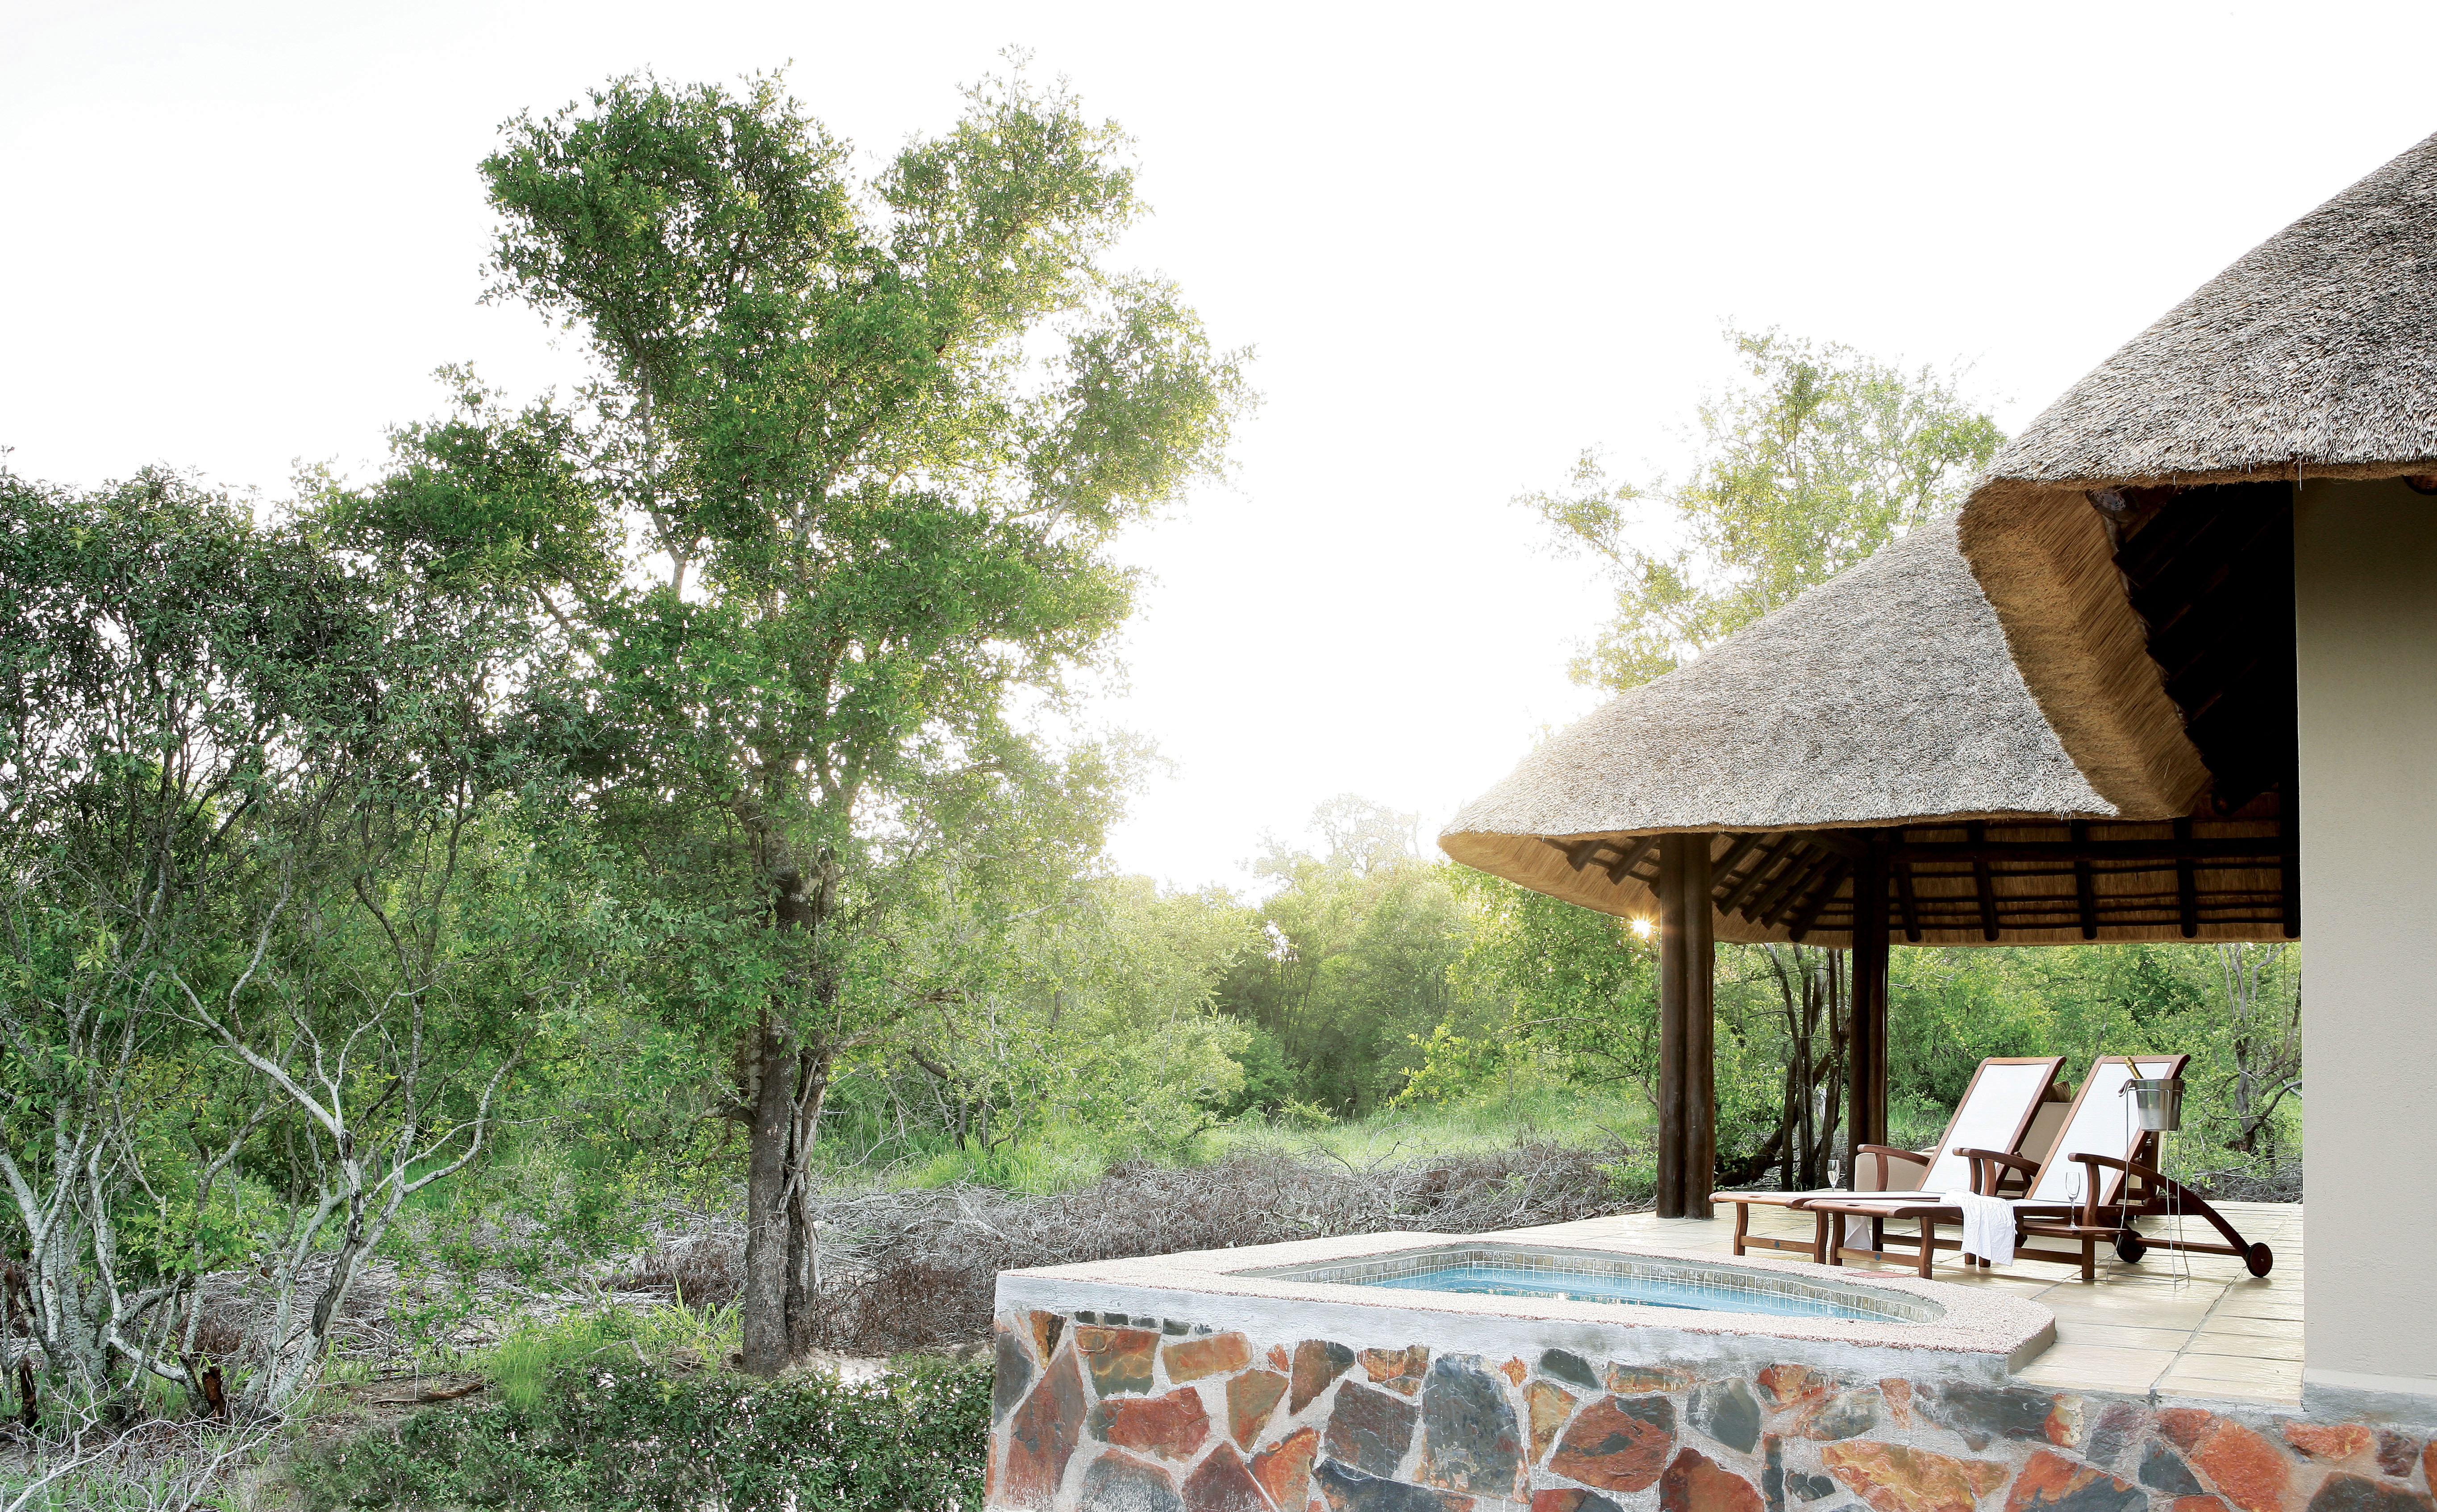 Arathusa-Private plunge pool and verandah of a Remote Luxury Suite